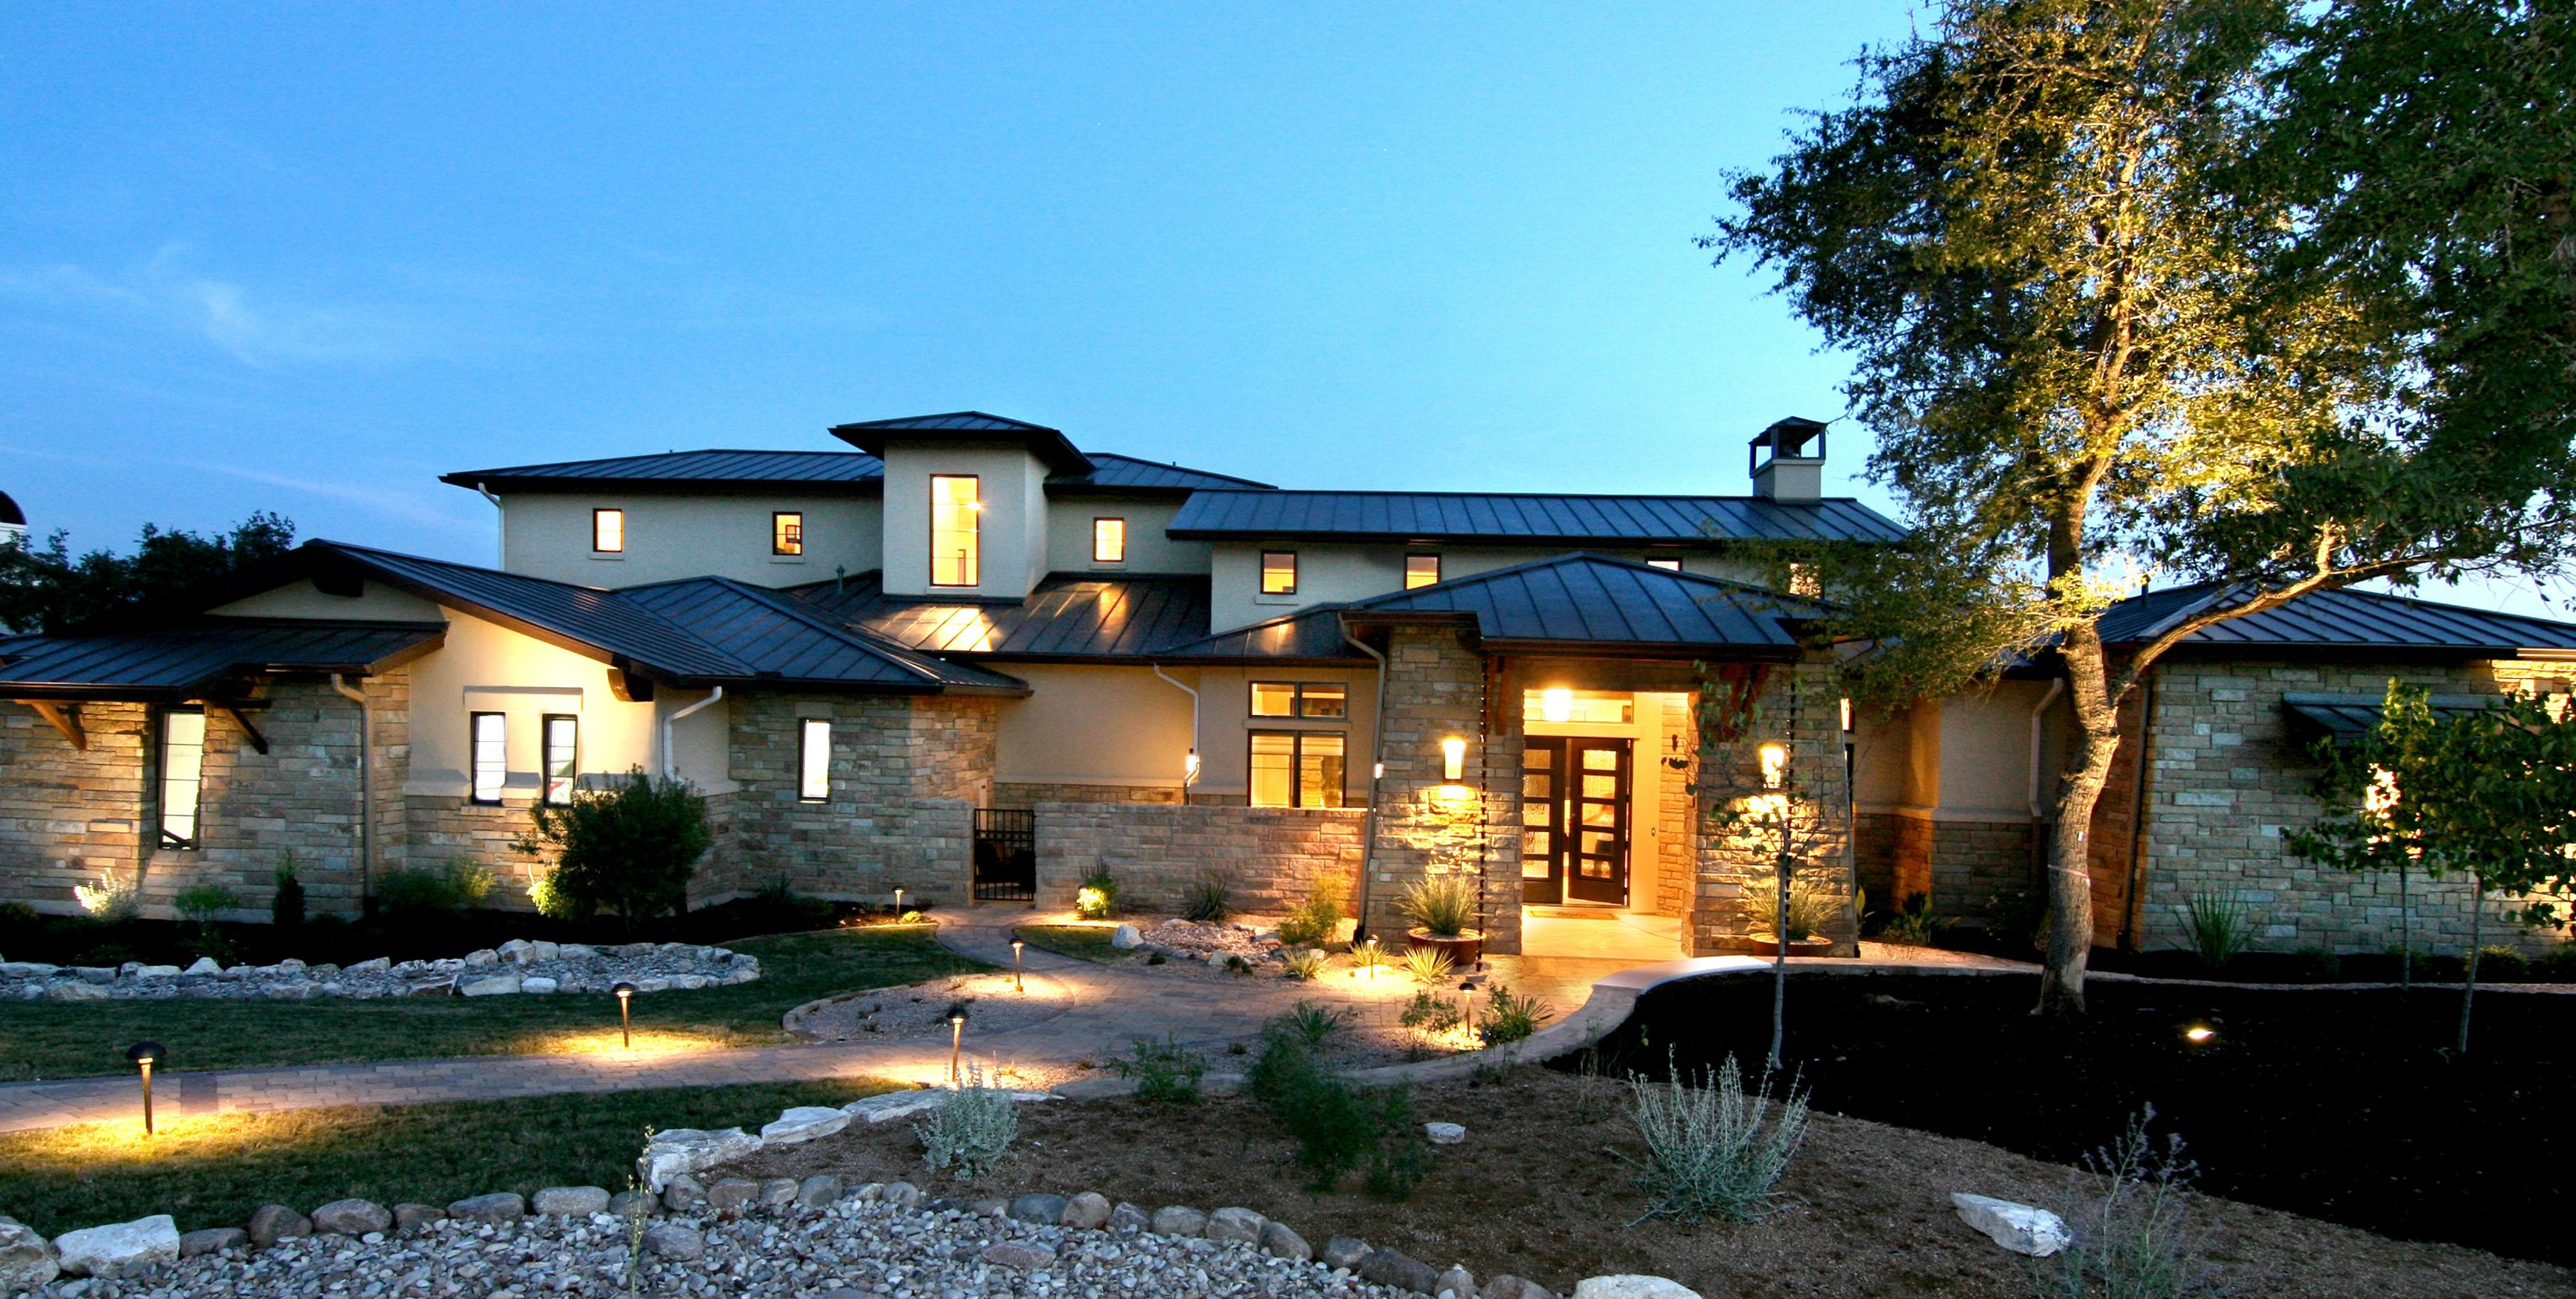 Texas hill country stone and siding home bing images for Modern house 52